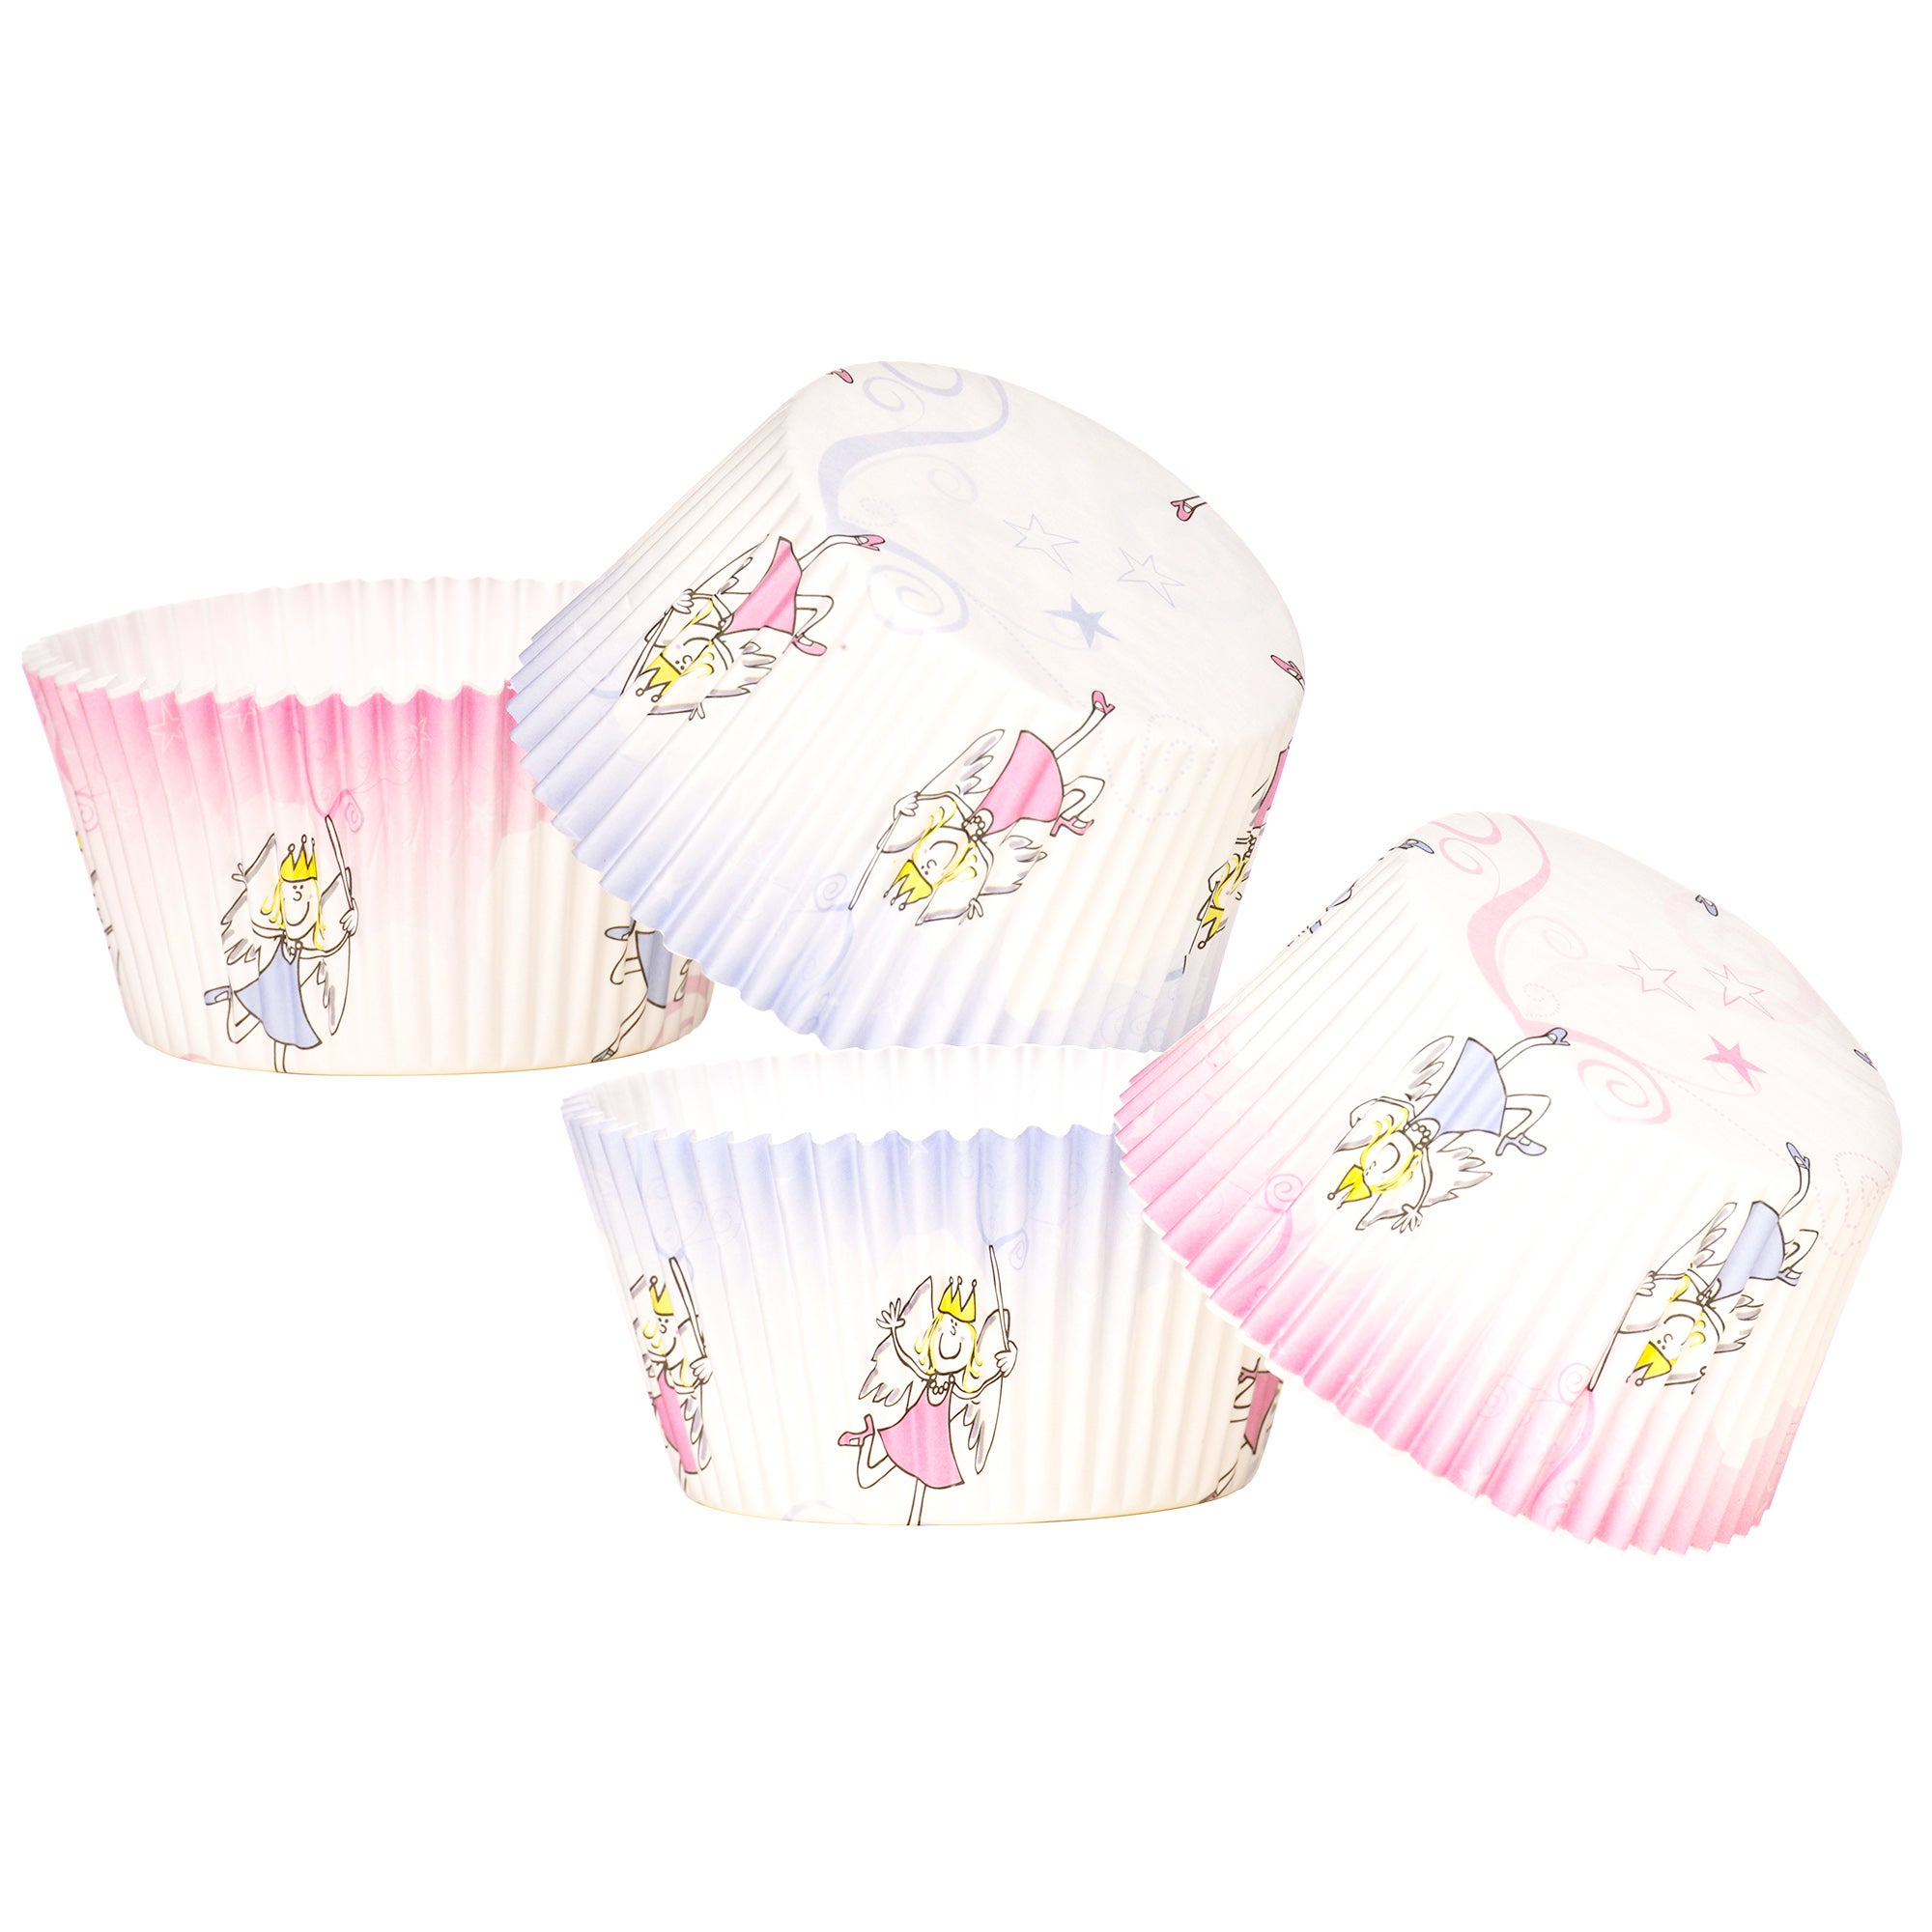 Kids Pack of 40 Large Fairies Cupcake Cases